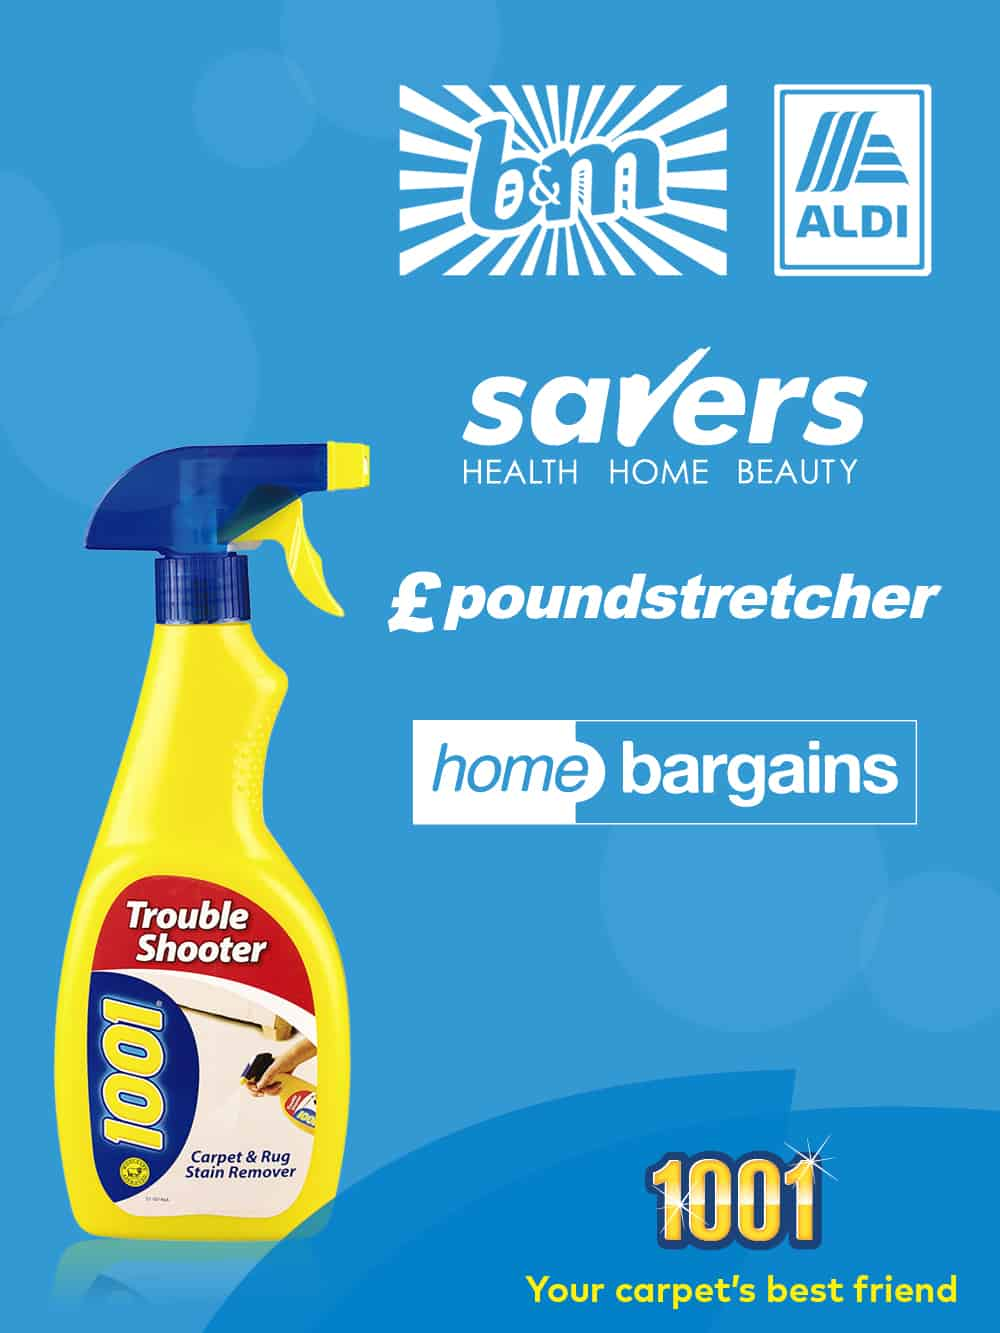 Where To Buy 1001 Products On The High St The Best Carpet Cleaner The Best Carpet Cleaner